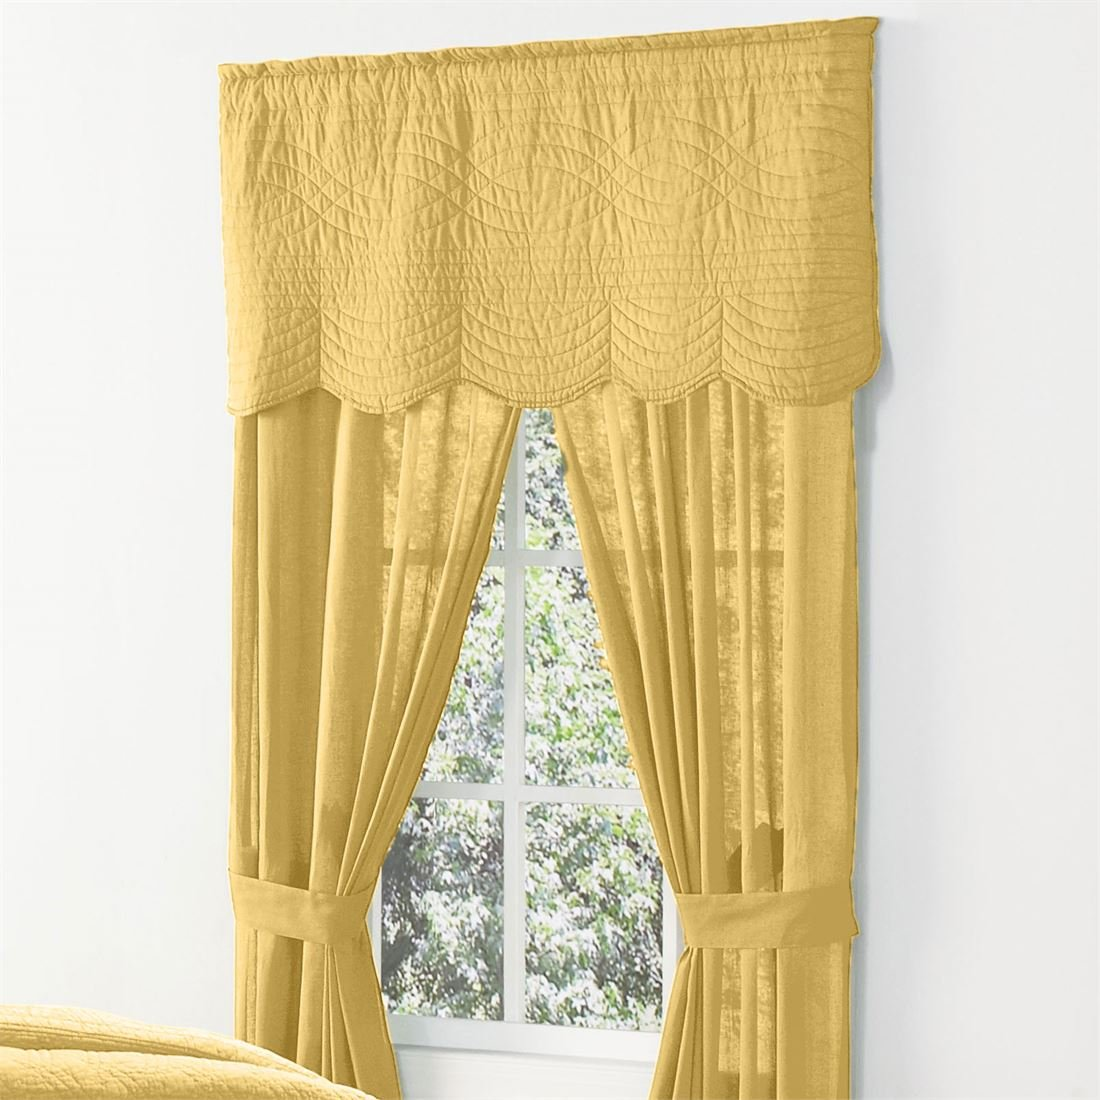 BrylaneHome Florence Rod Pocket Panel, 42 In X 84 In, Pair (Aspen Gold,0)